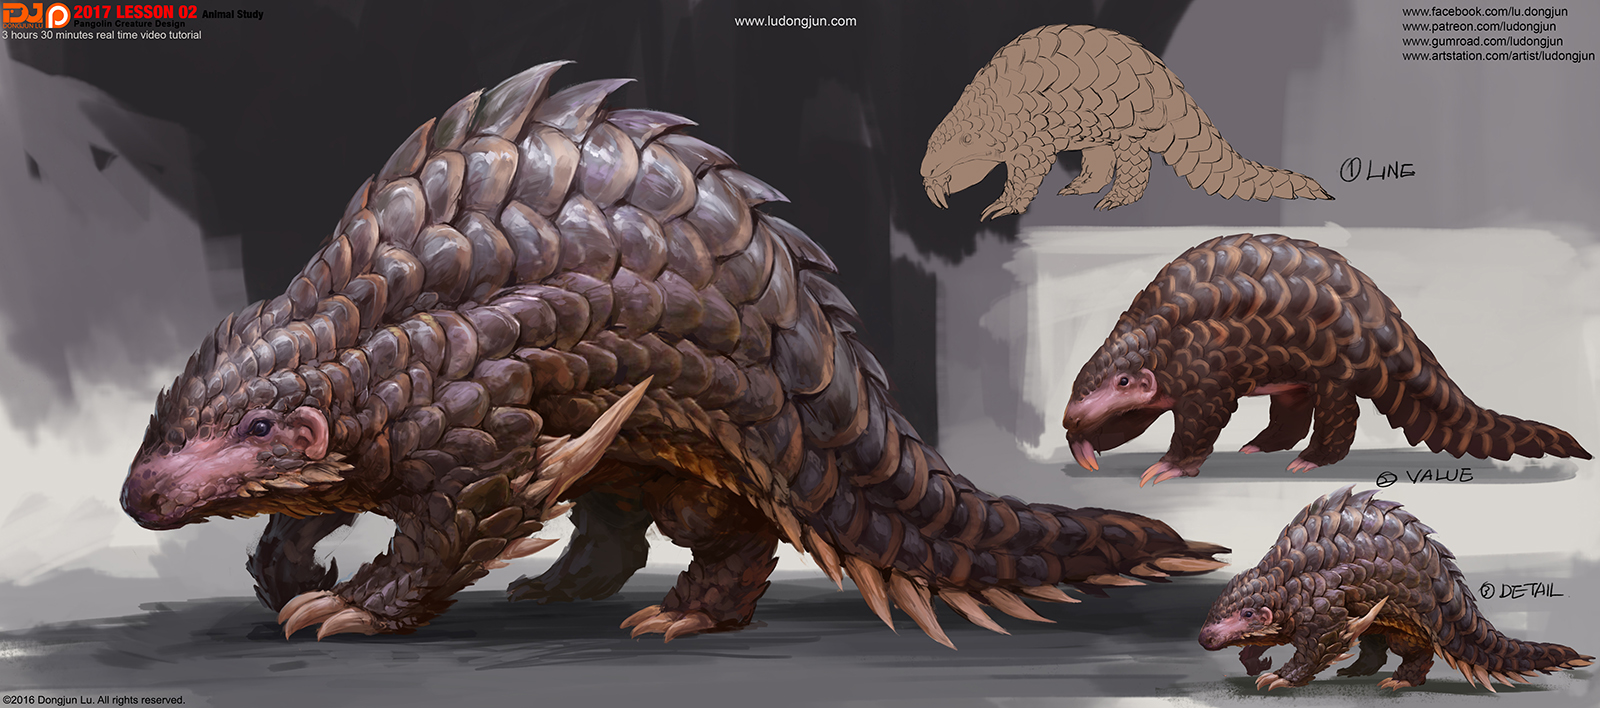 2017Lesson02_Pangolin Creature_Arrange_small